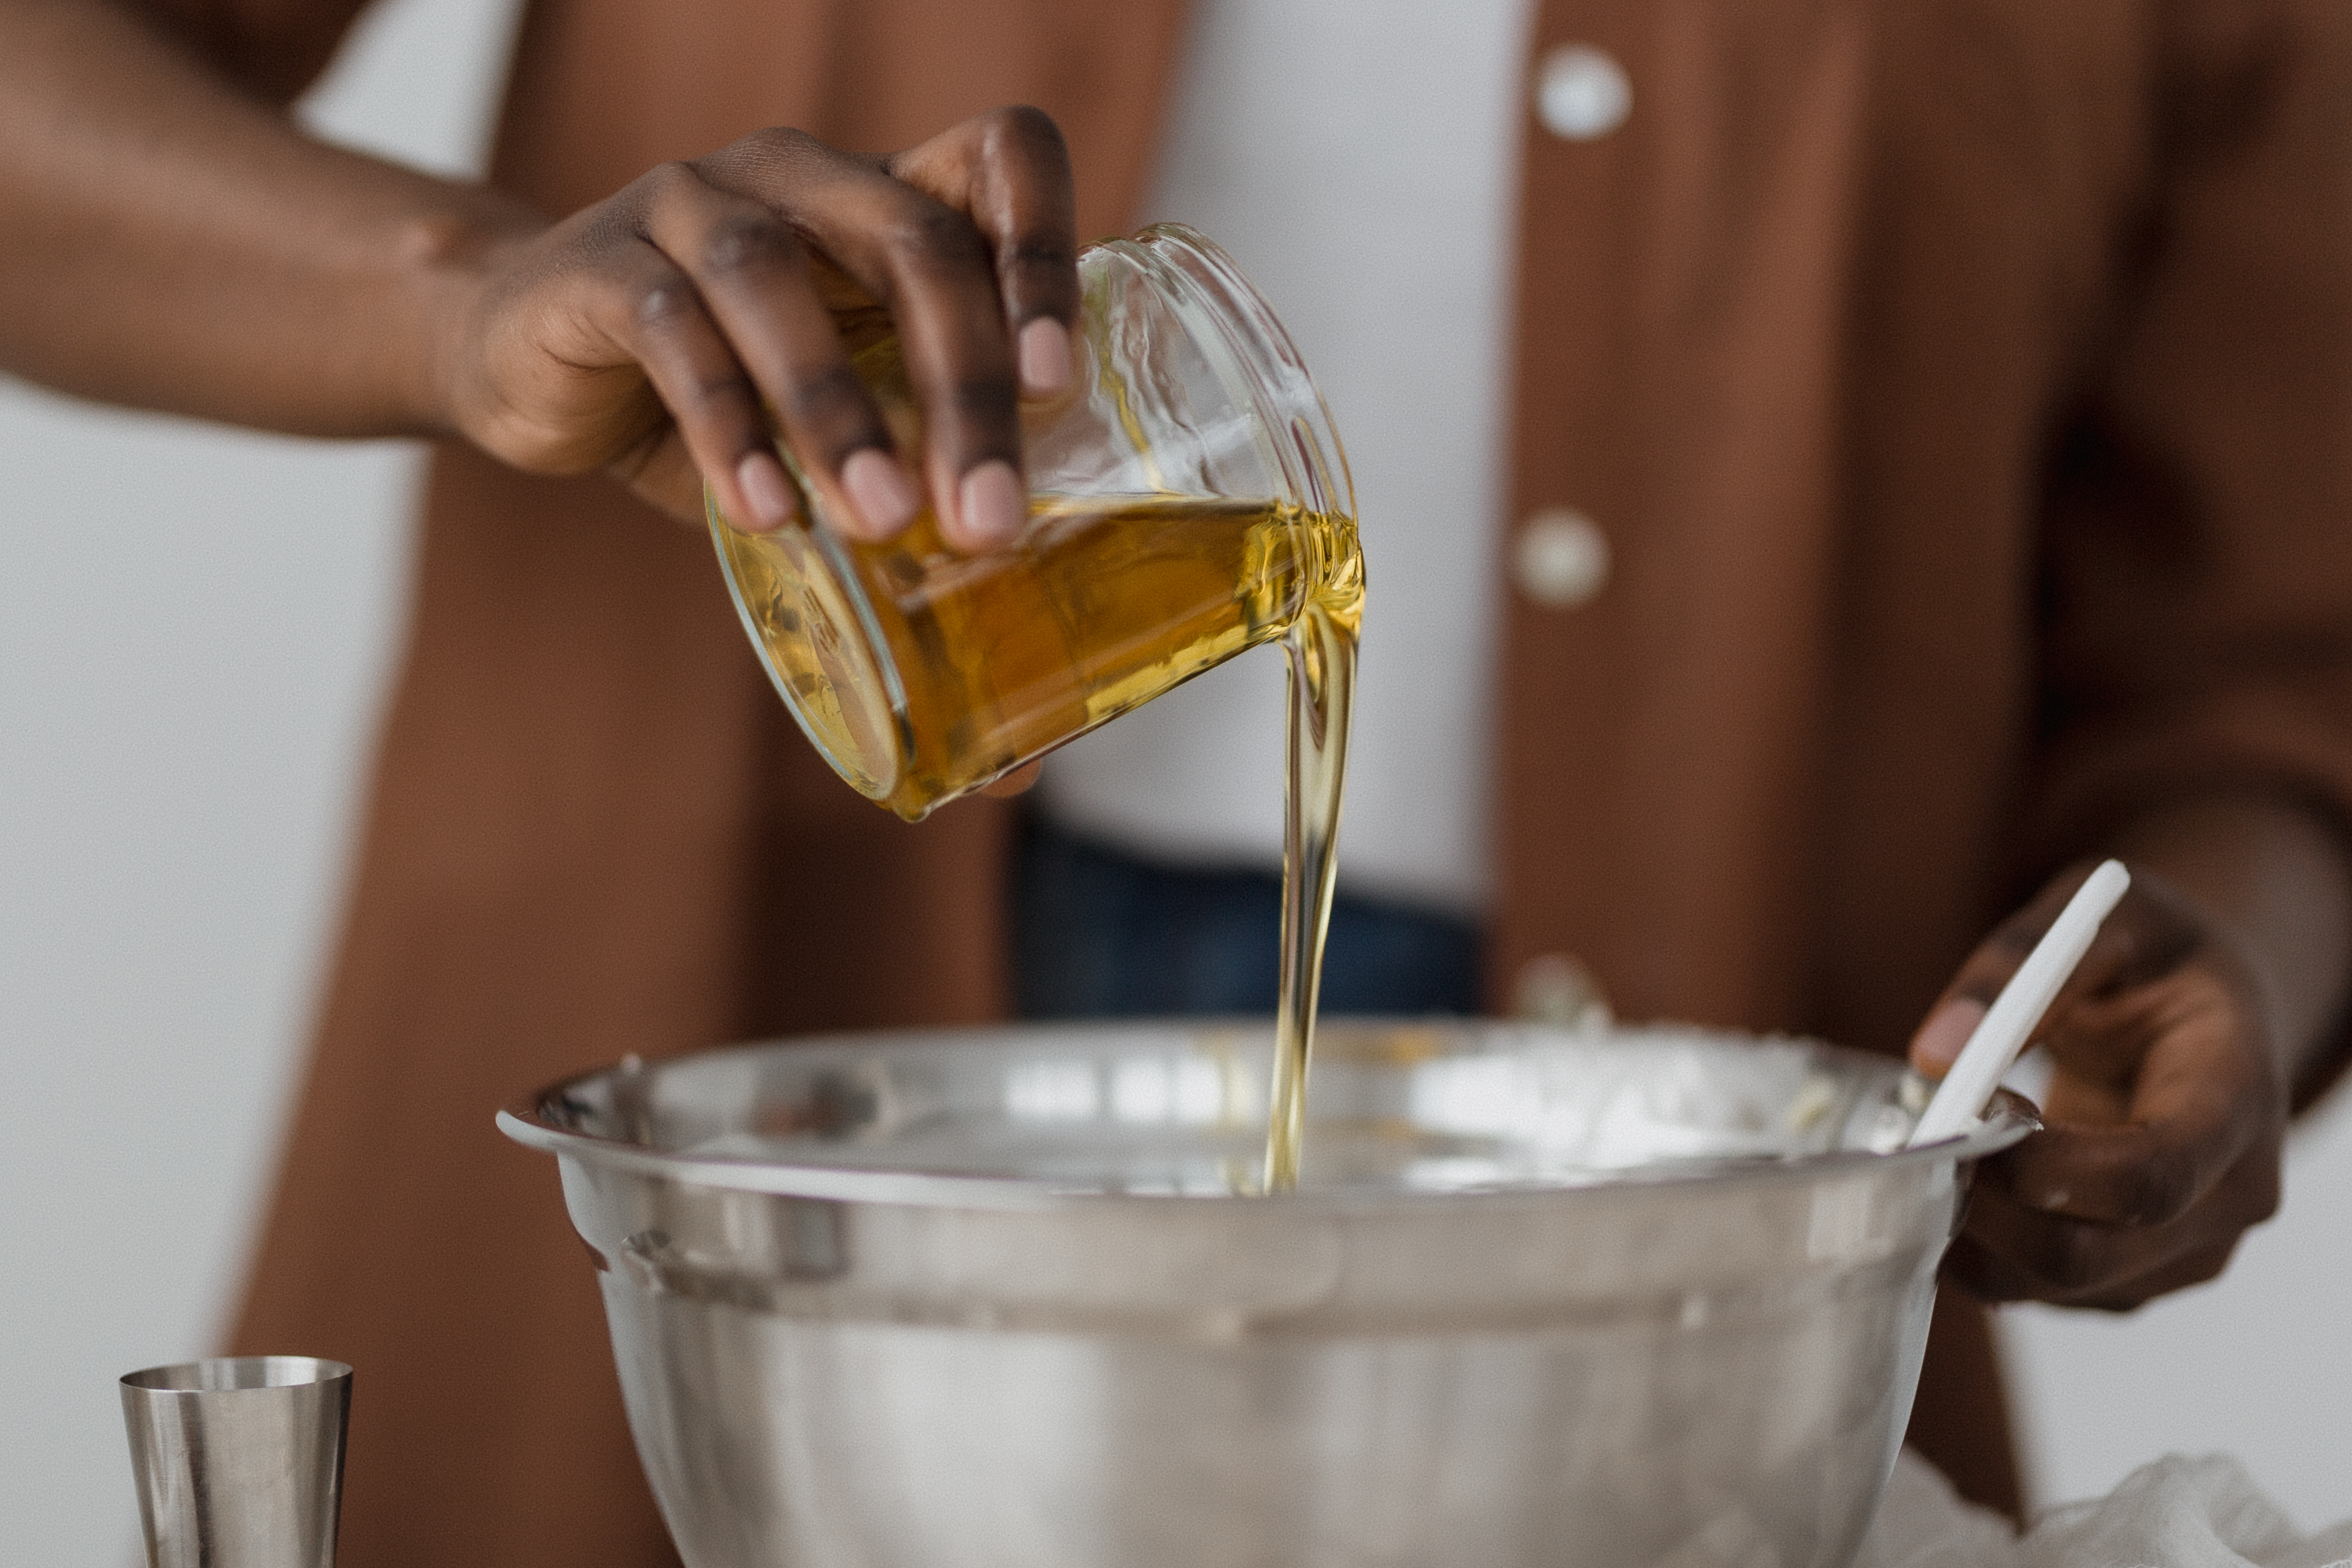 a glass jar filled with olive oil being poured into a stainless steel bowl